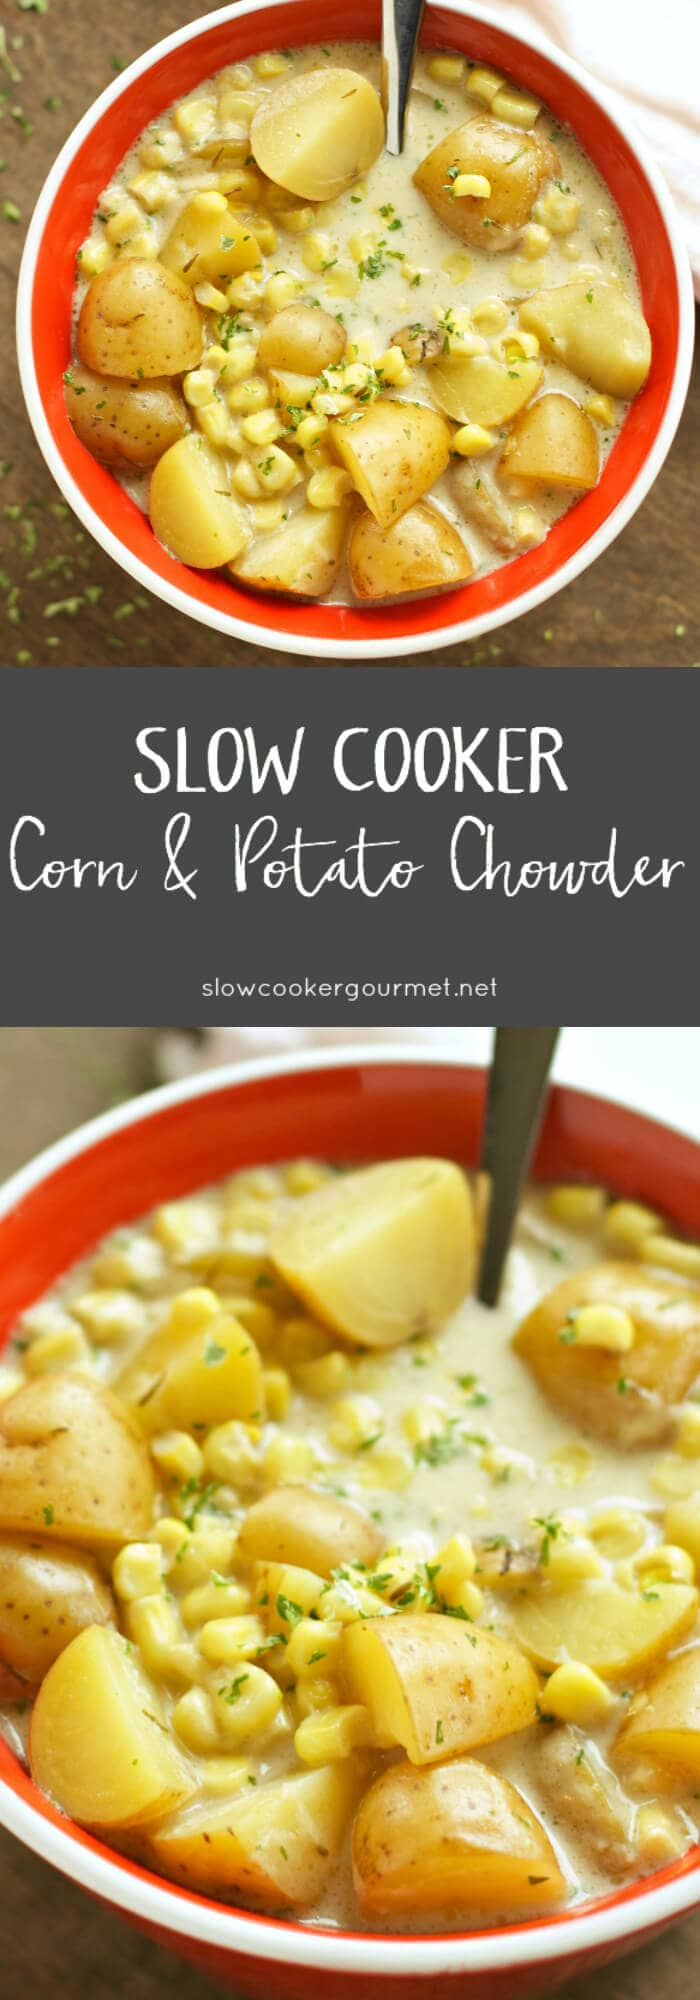 Slow Cooker Gourmet Corn and Potato Chowder